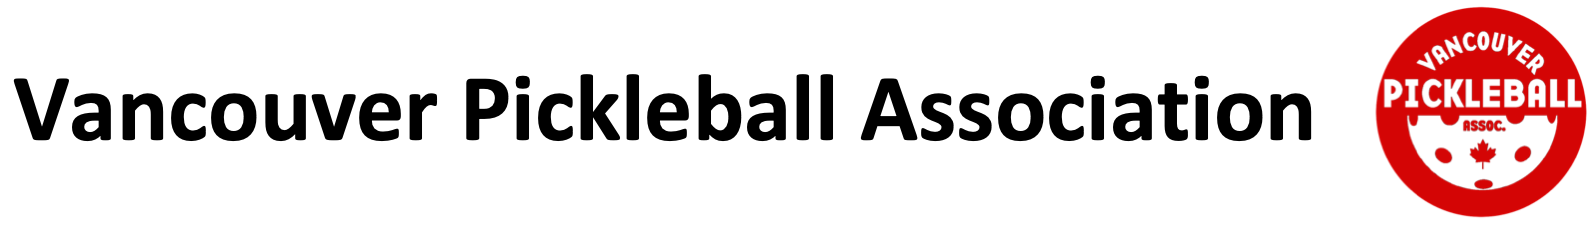 Vancouver Pickleball Association